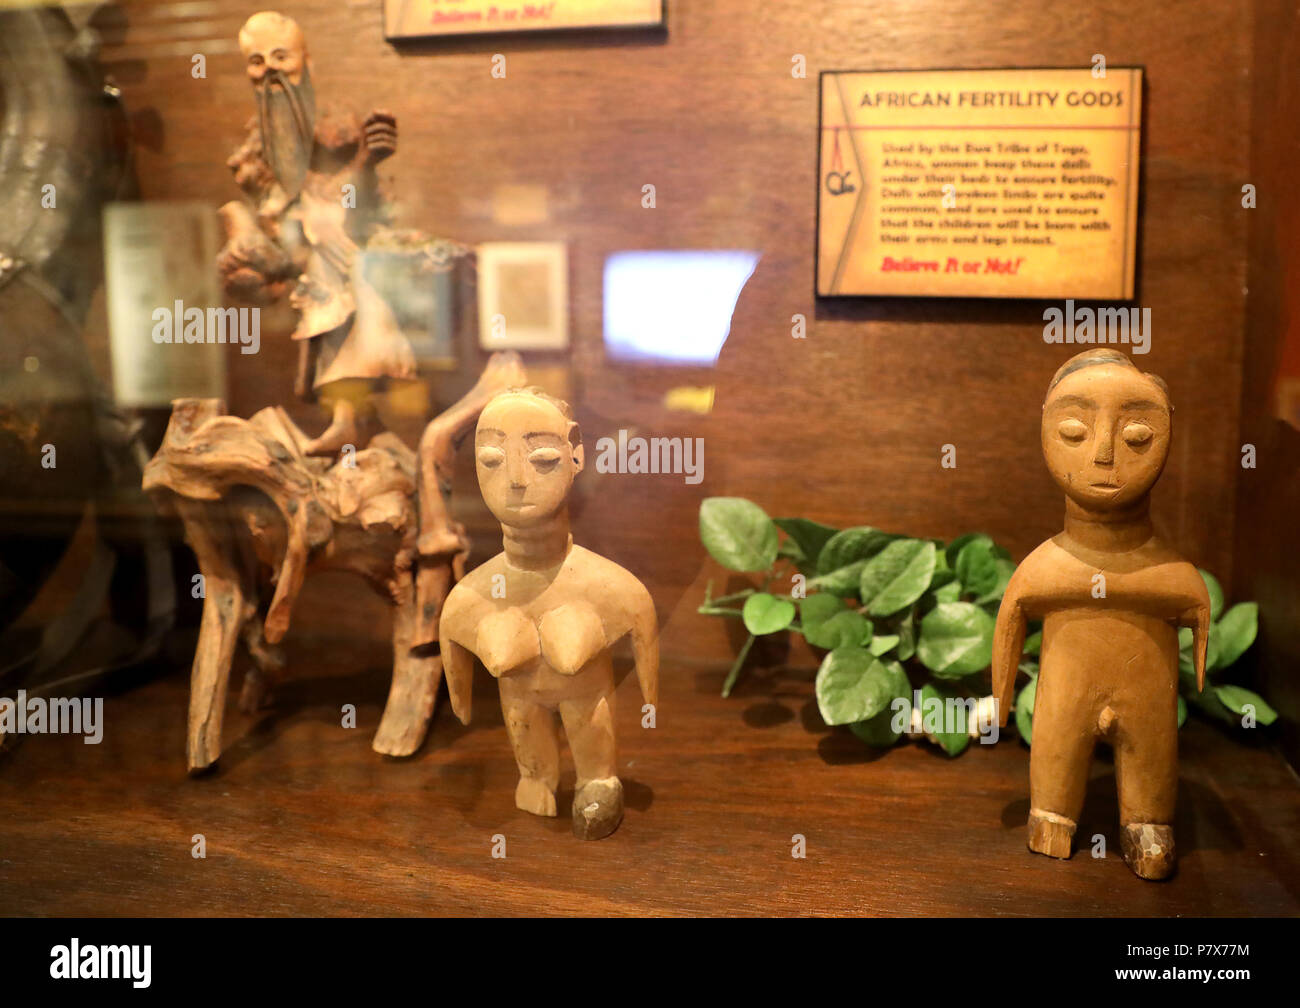 African Fertility Gods Wooden Sculpture - Stock Image